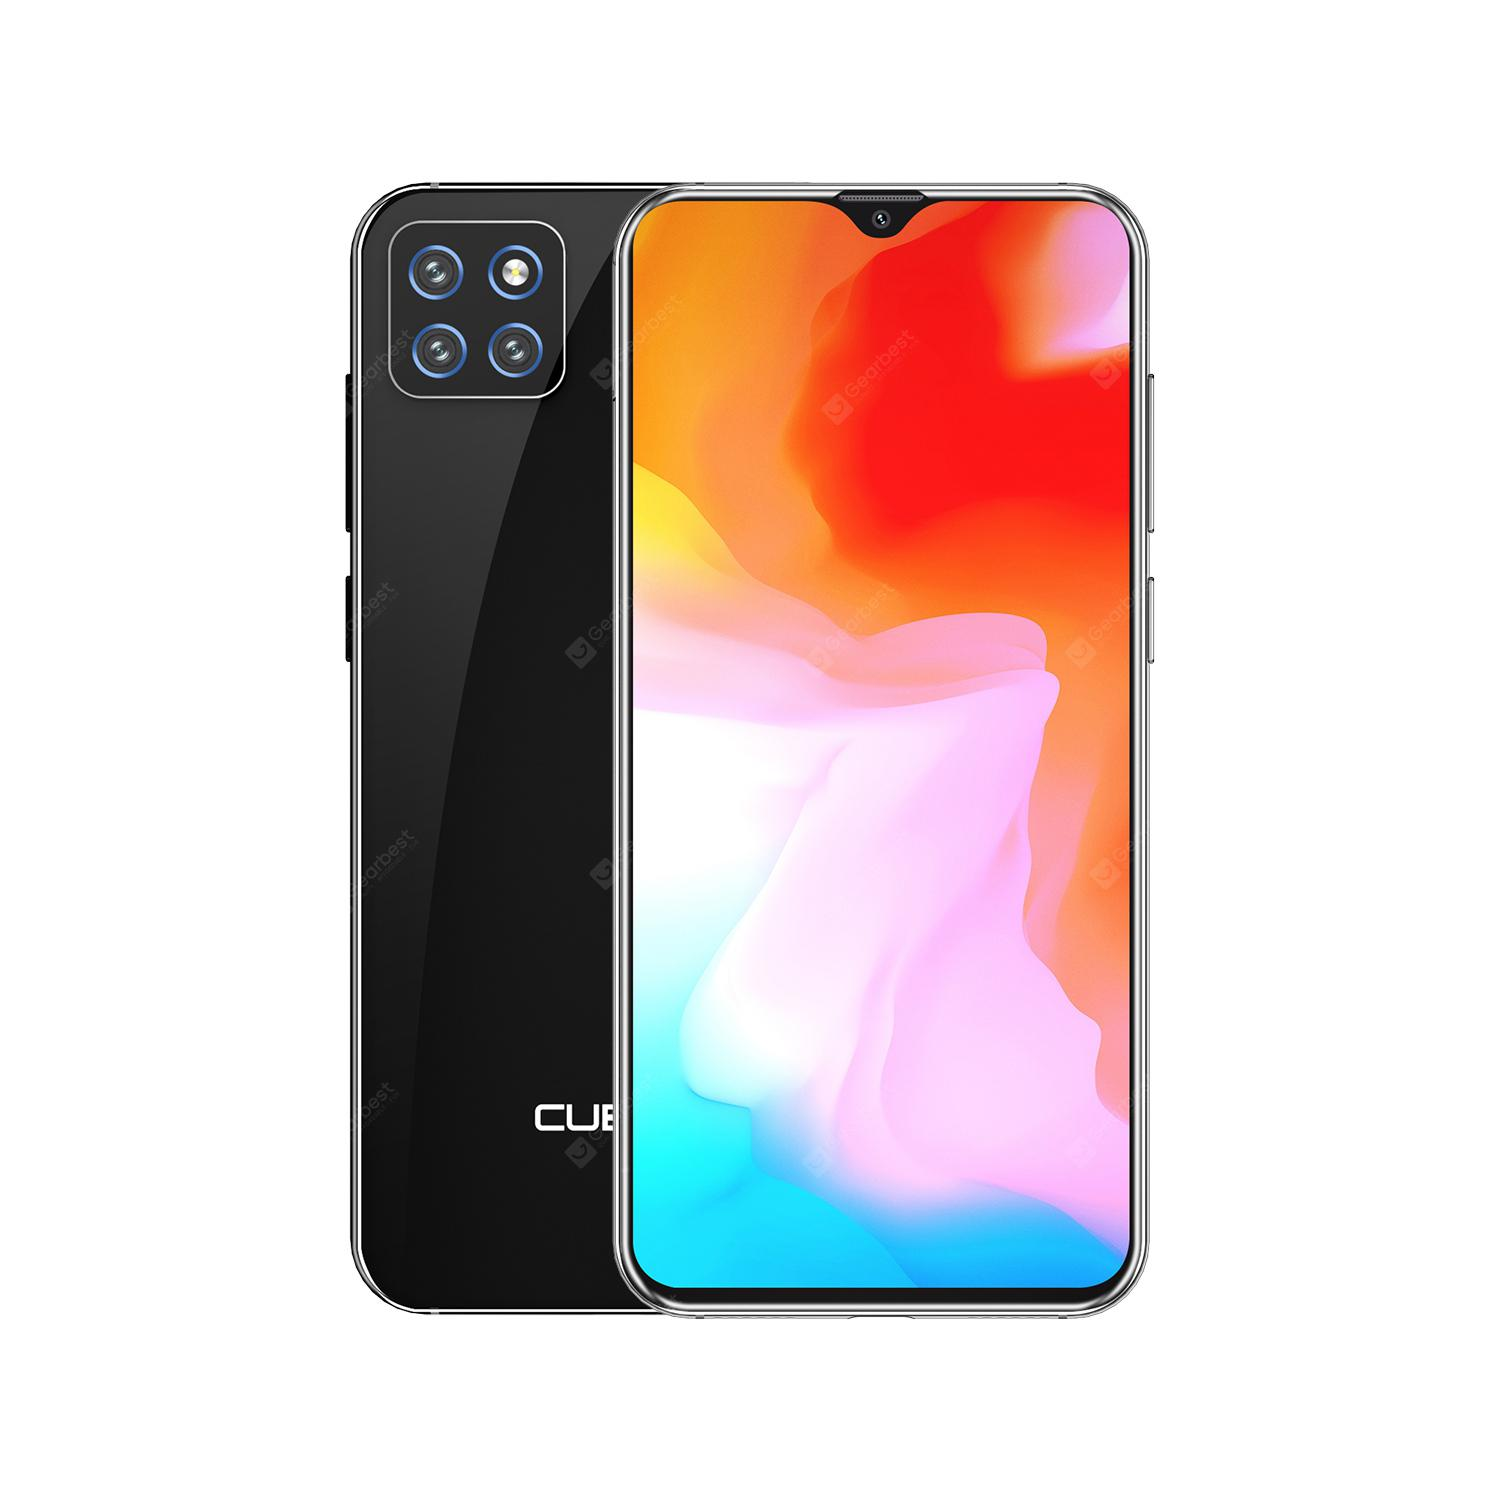 CUBOT X20 Pro 6.3 inch 4G Smartphone with 6GB RAM 128GB ROM AI Triple Camera Android 9.0 4000mAh Battery - Black